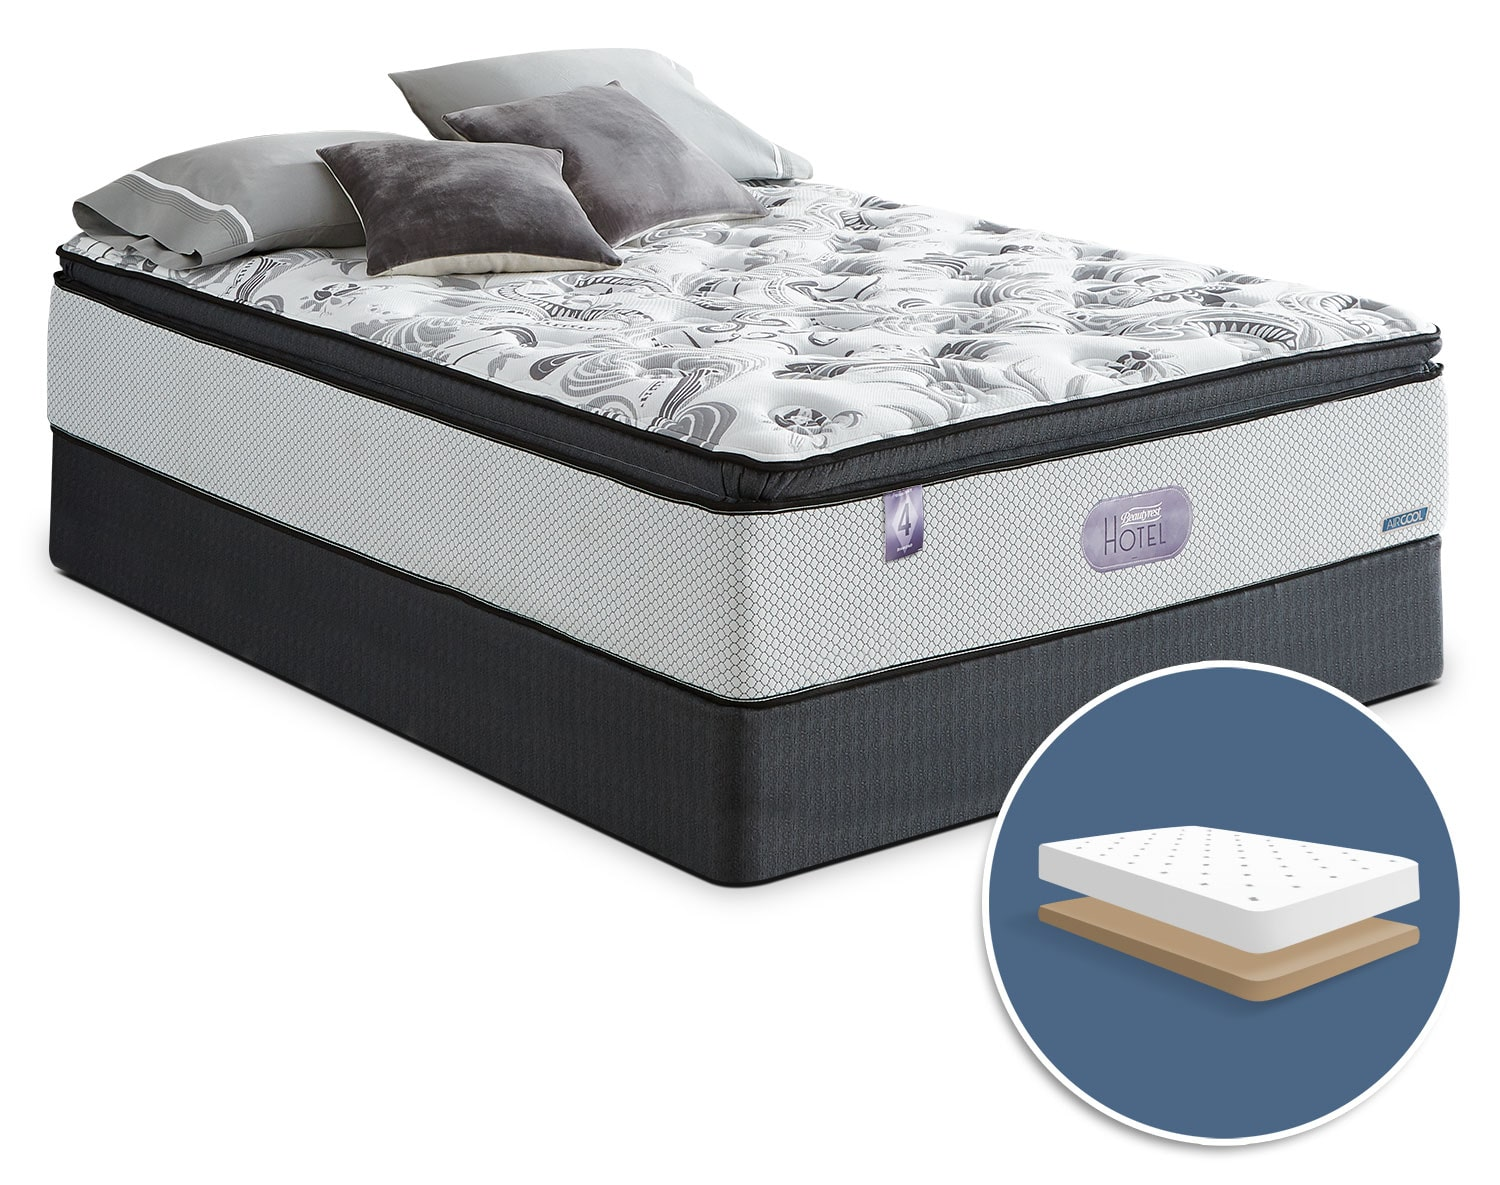 Mattresses and Bedding - Simmons Beautyrest® Hotel Diamond 4.0 Hi-Loft Pillow-Top Low-Profile Queen Mattress Set